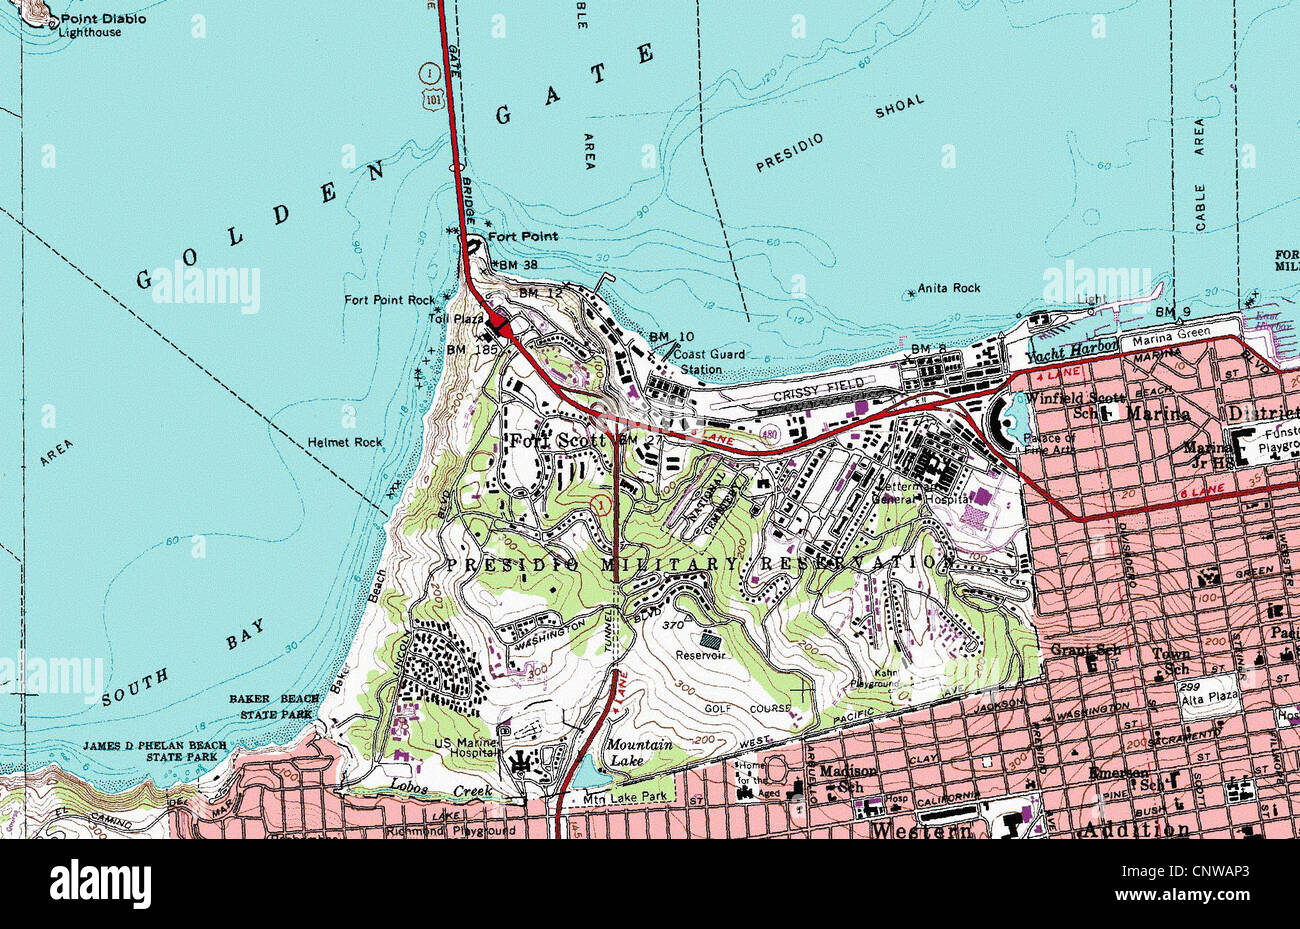 topographic map of San Francisco Presidio California Stock Photo ...